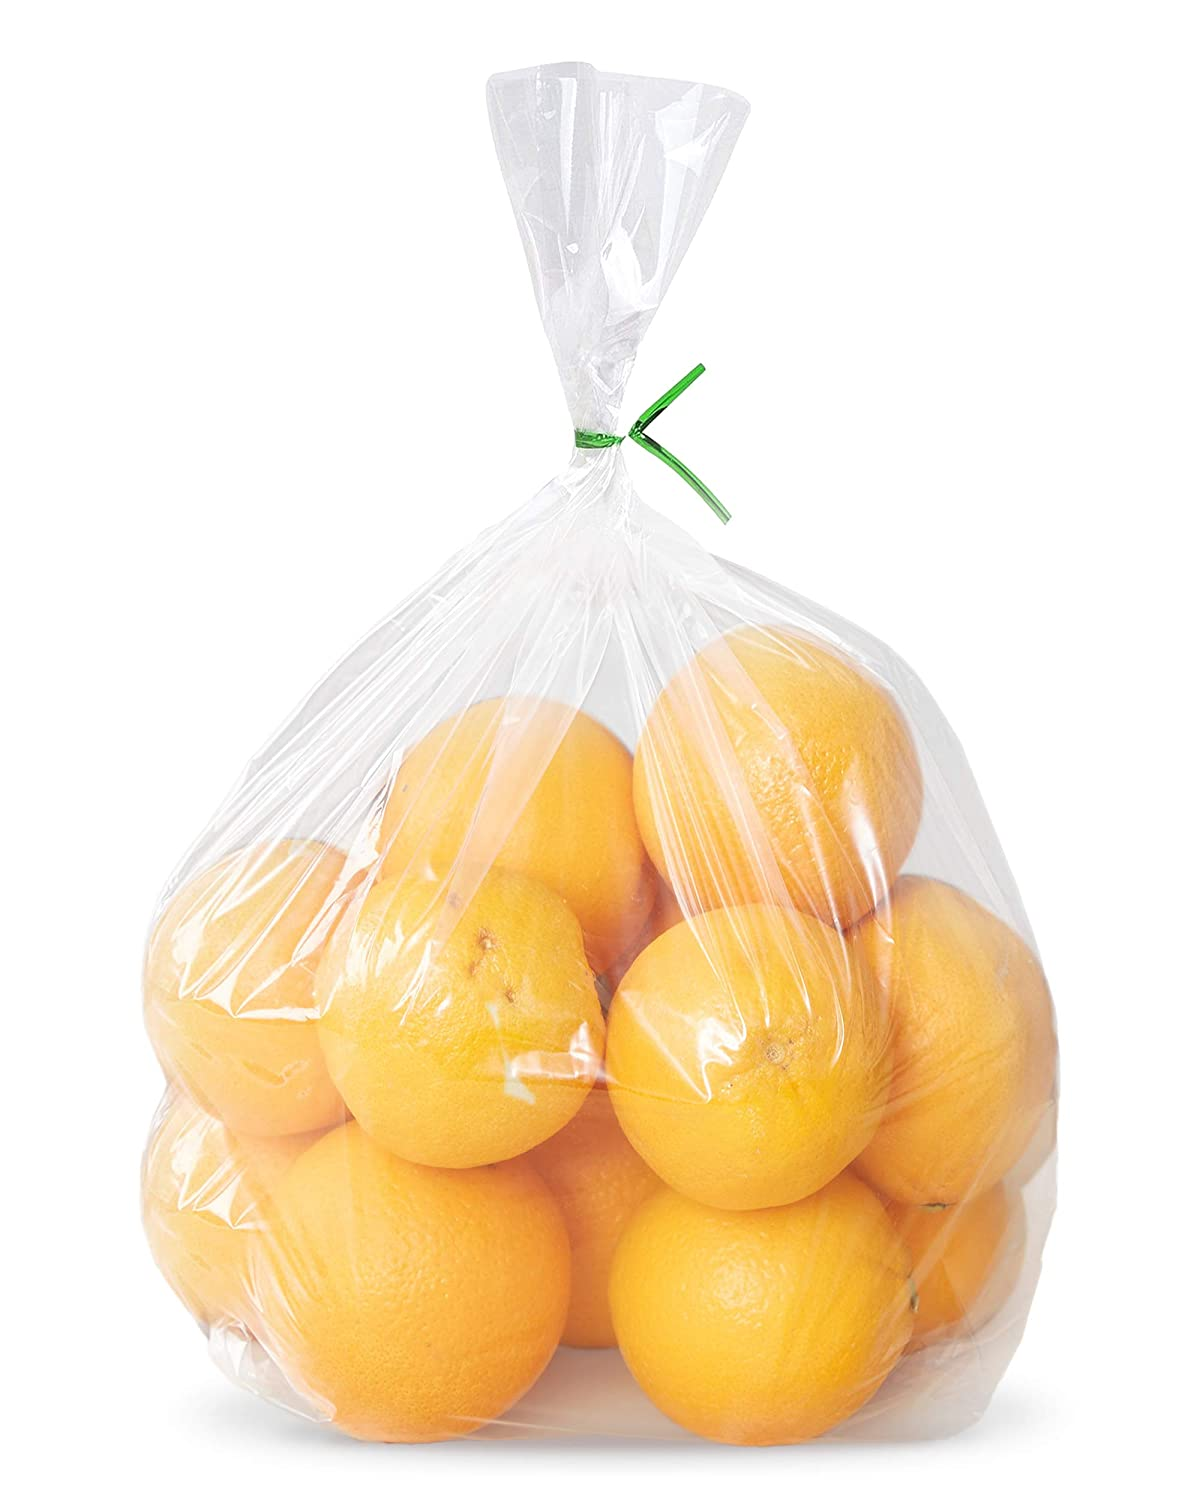 APQ Pack of 100 Jumbo Gusseted Poly Bags 10 x 6 x 24 Extra Large Cloudy Clear Bags 10x6x24 2 Mil Expandable Side Gusset Bags Open Ended Bags for Industrial, Food Service, Health Needs